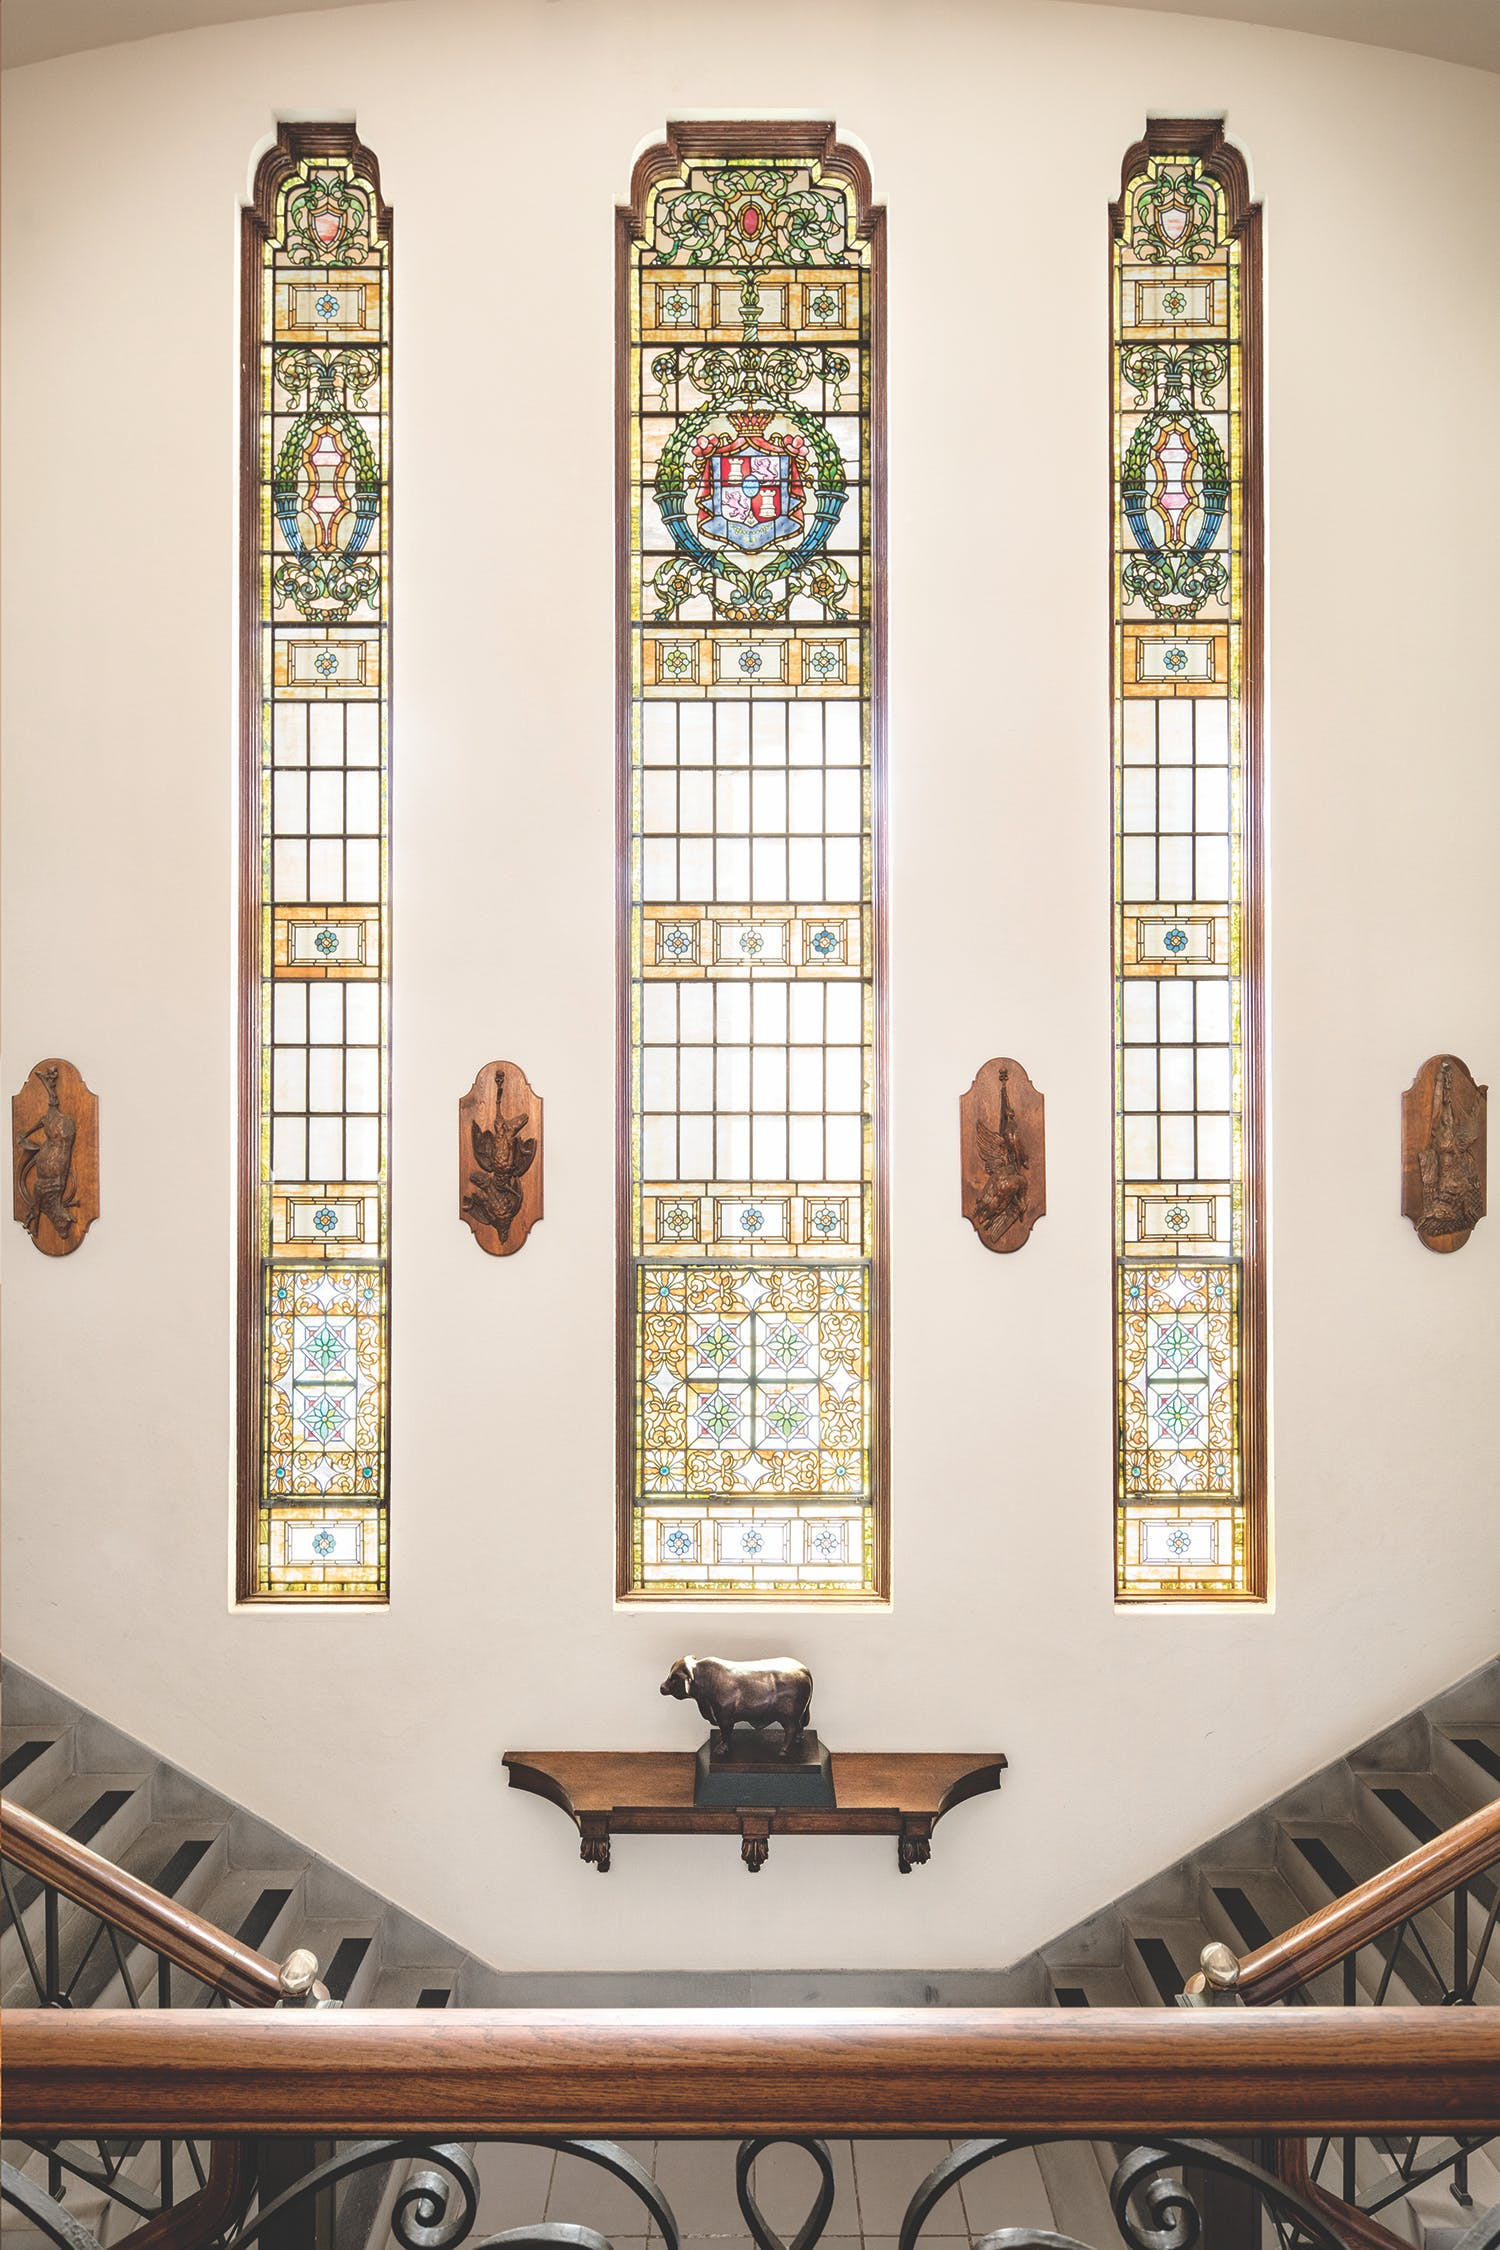 The famed Tiffany windows contain nine thousand pieces of stained glass.